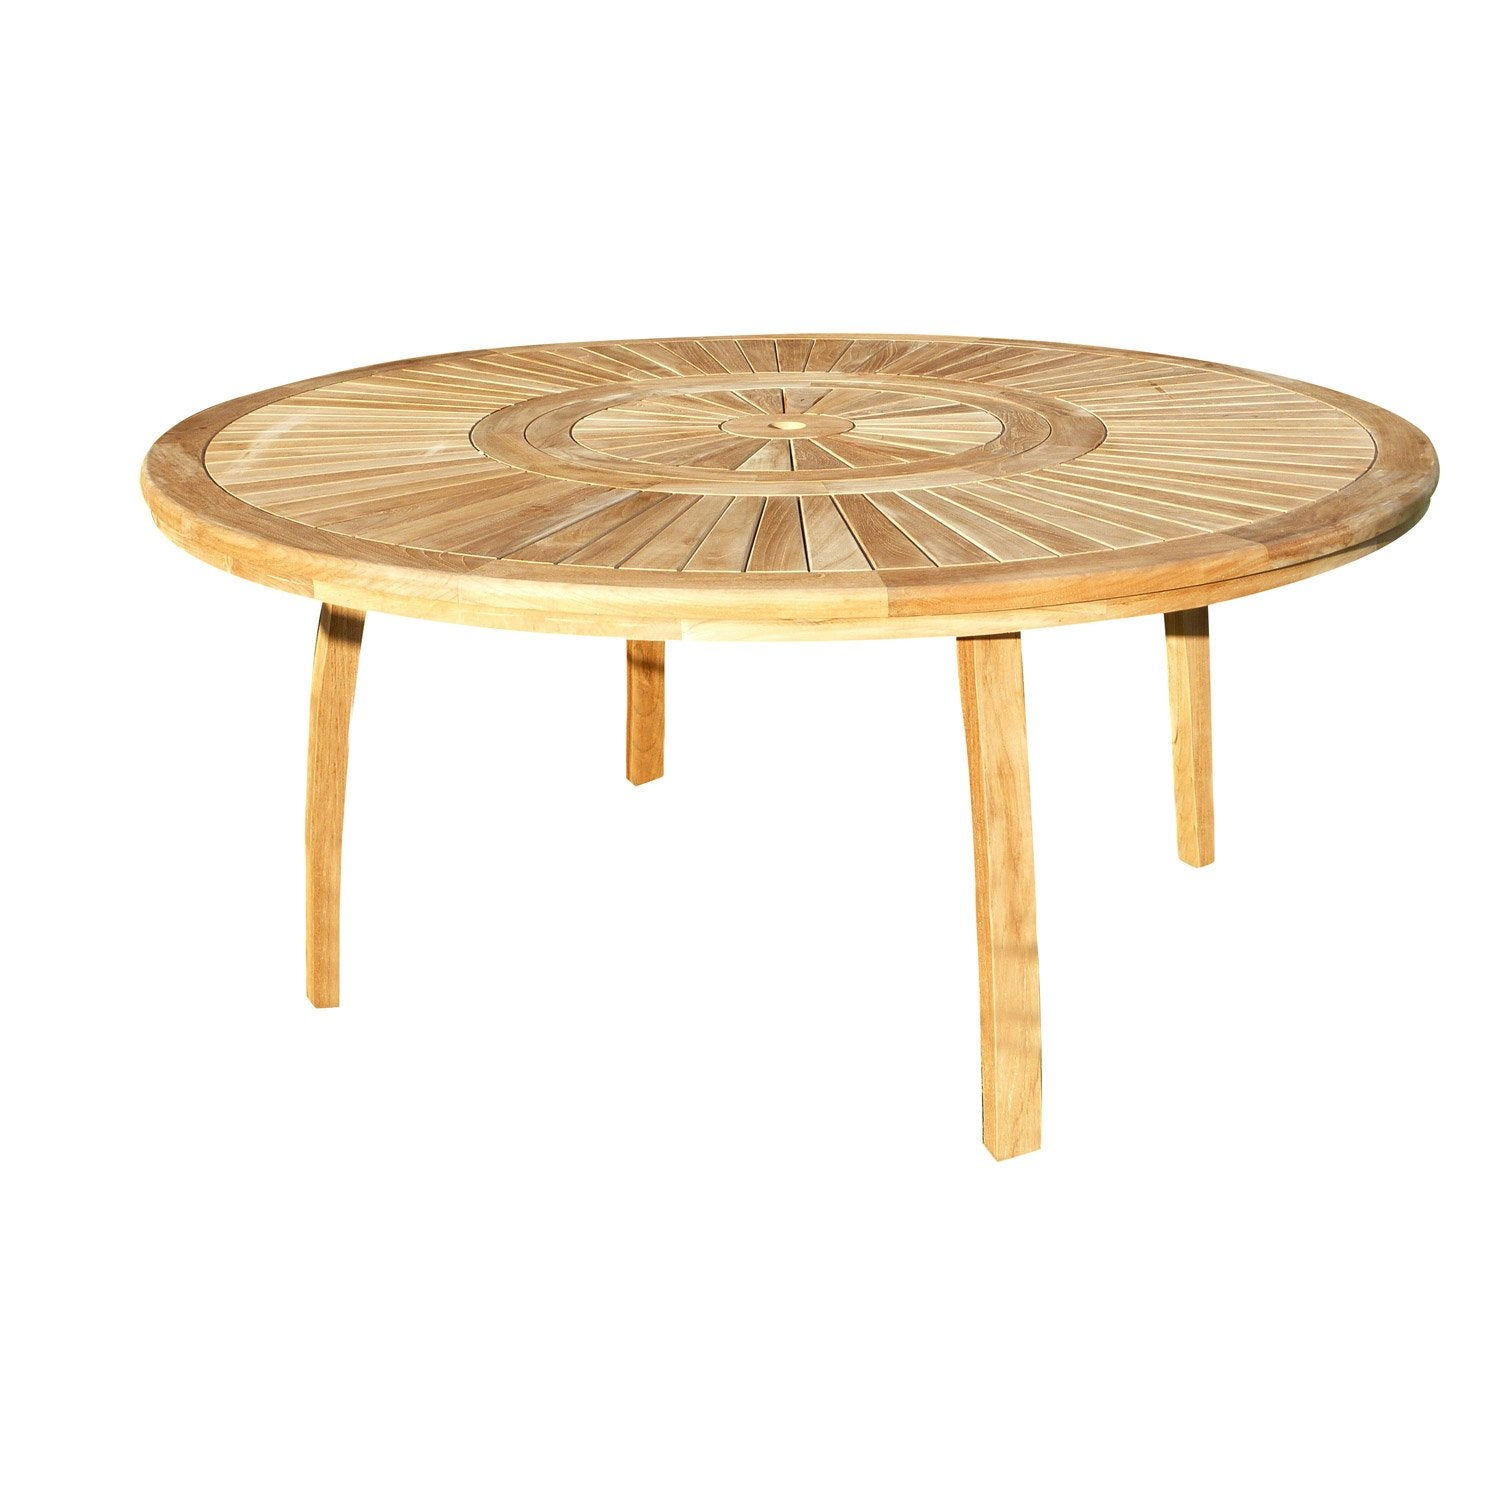 Table de jardin orion ronde naturel 8 personnes leroy merlin - Table de jardin lumineuse ...